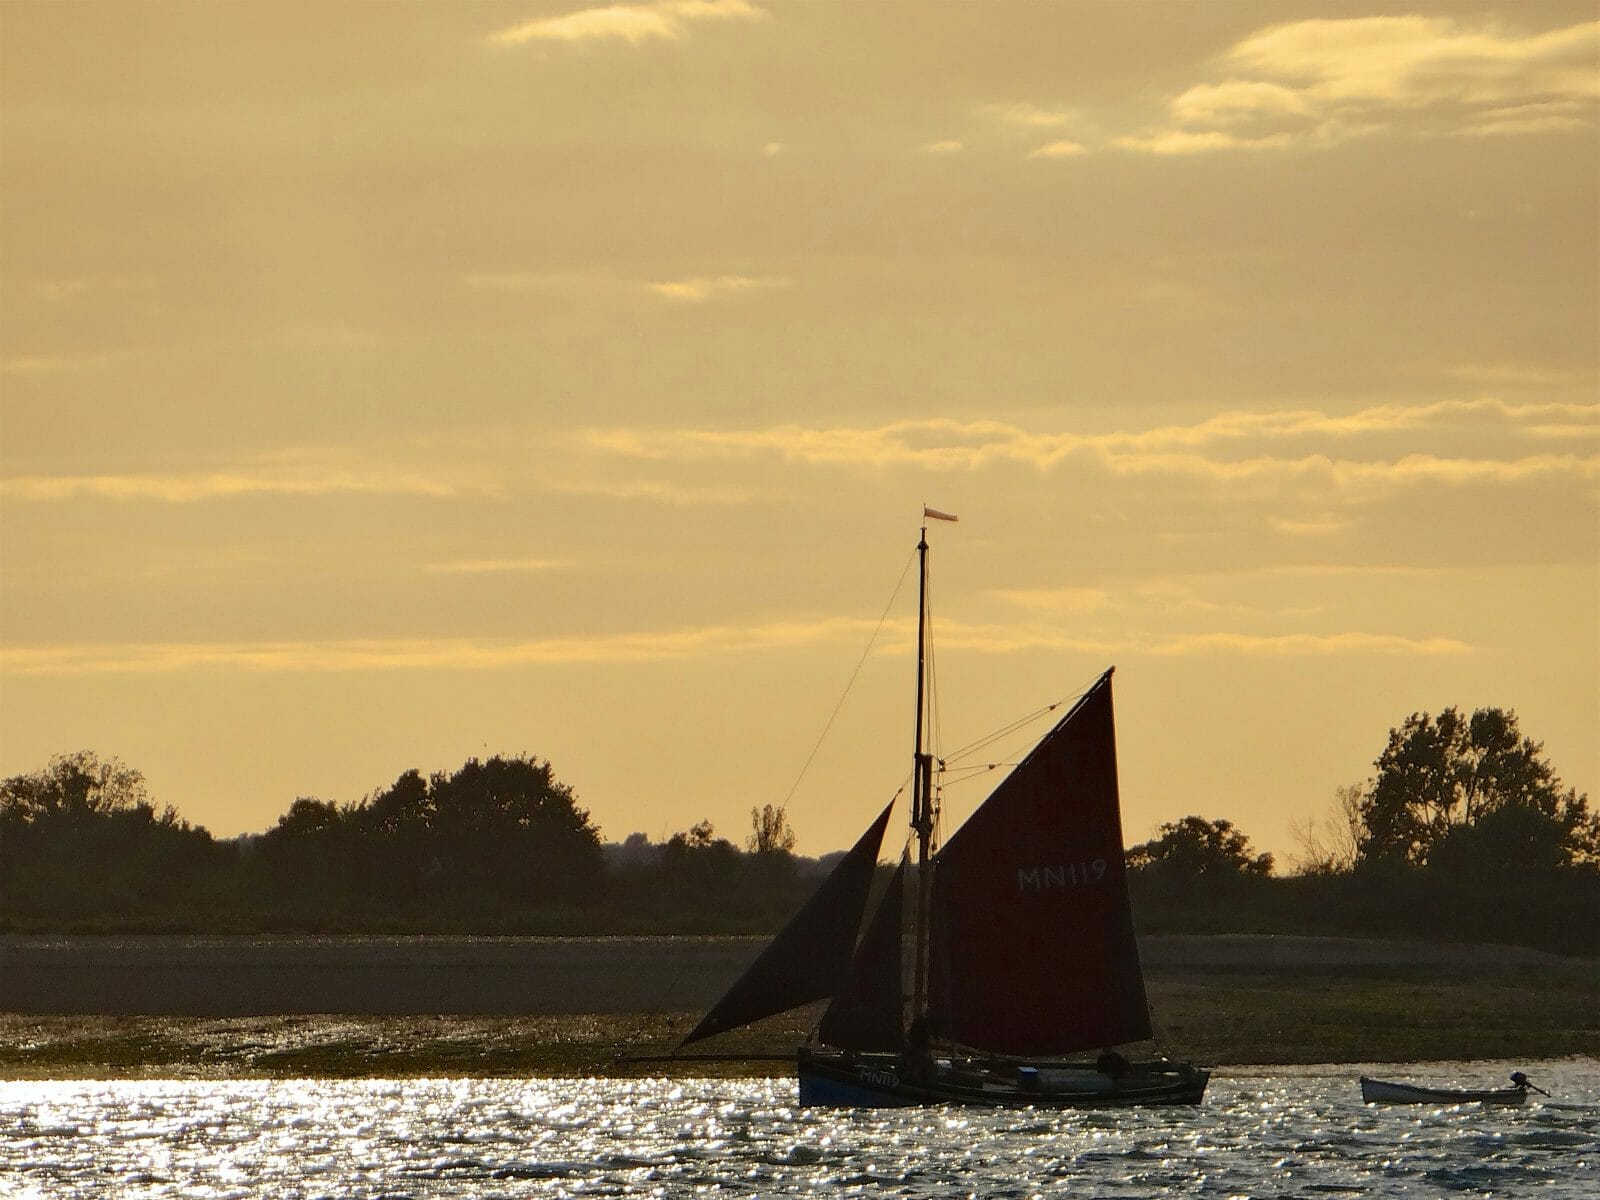 Evening on the Blackwater